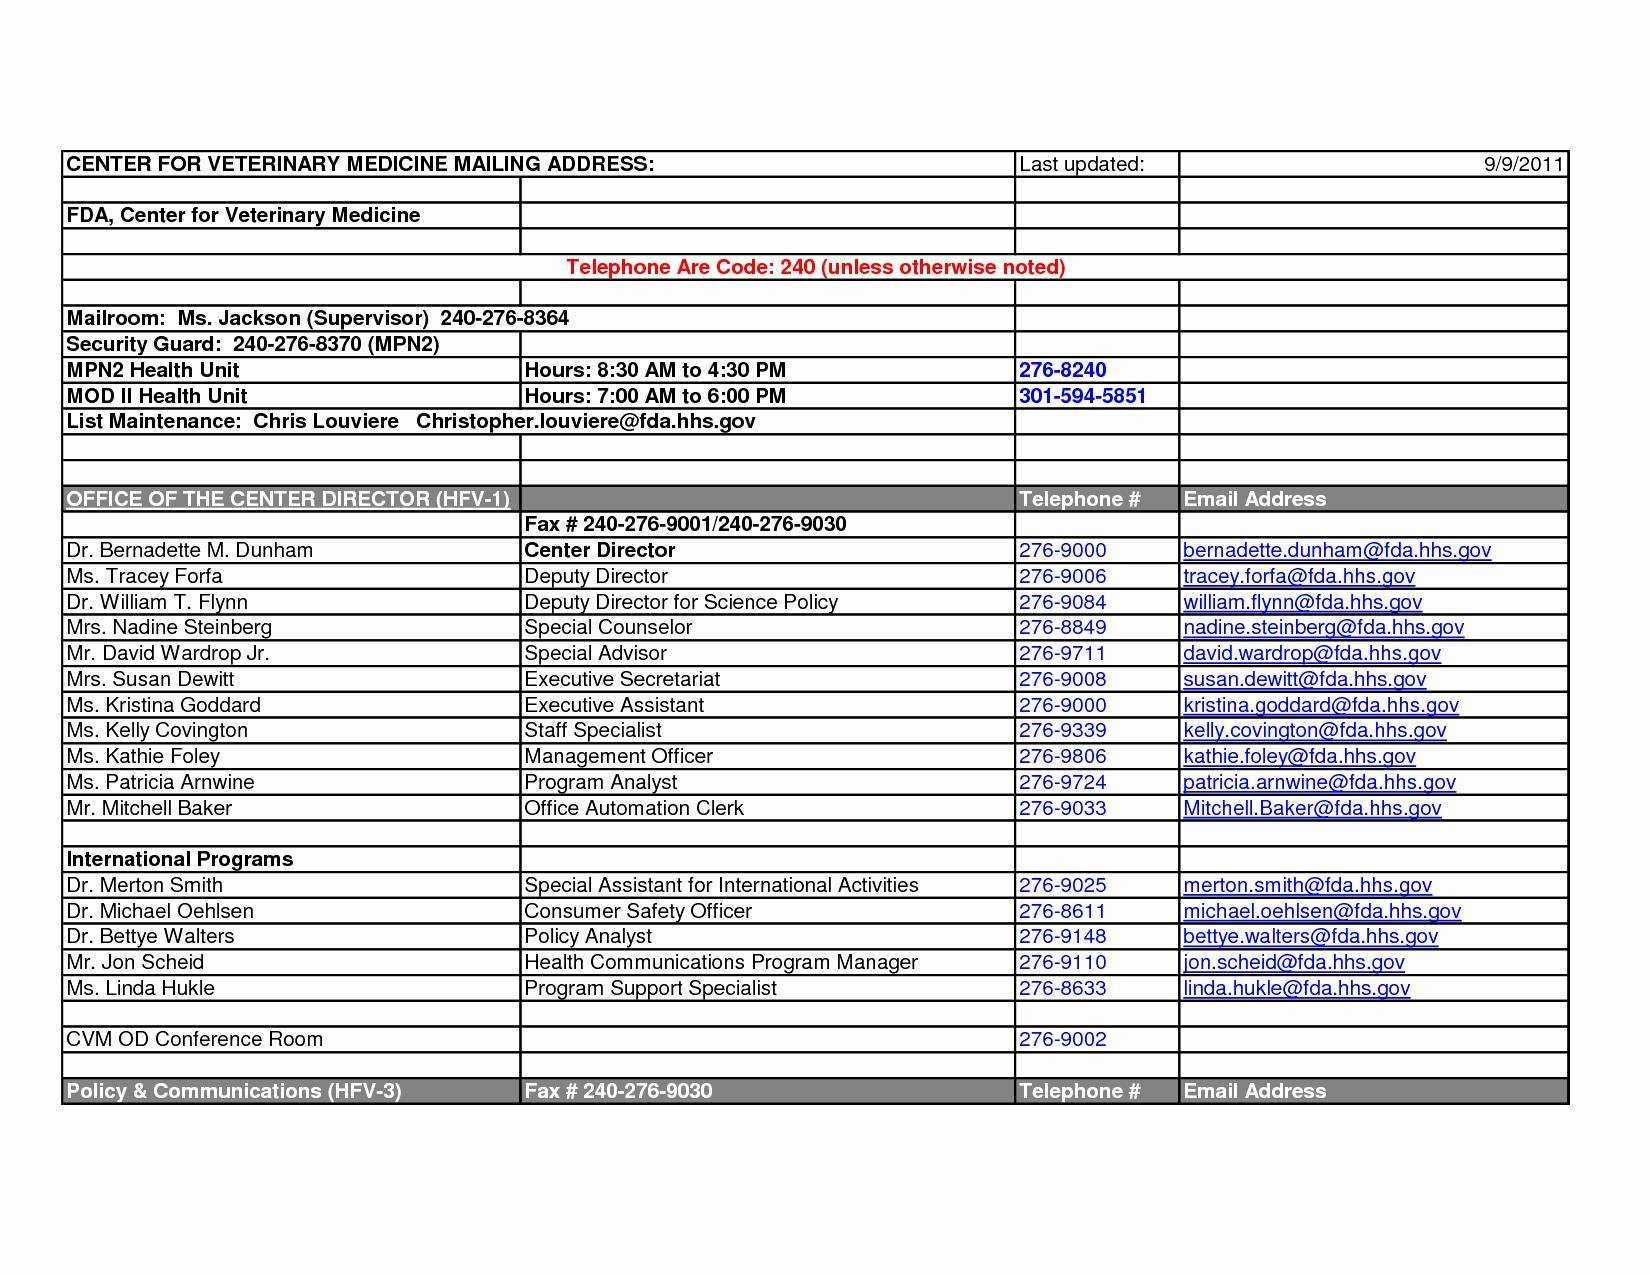 Business Spreadsheet Templates Free List Of Excel Business Throughout Small Business Spreadsheet Templates Free